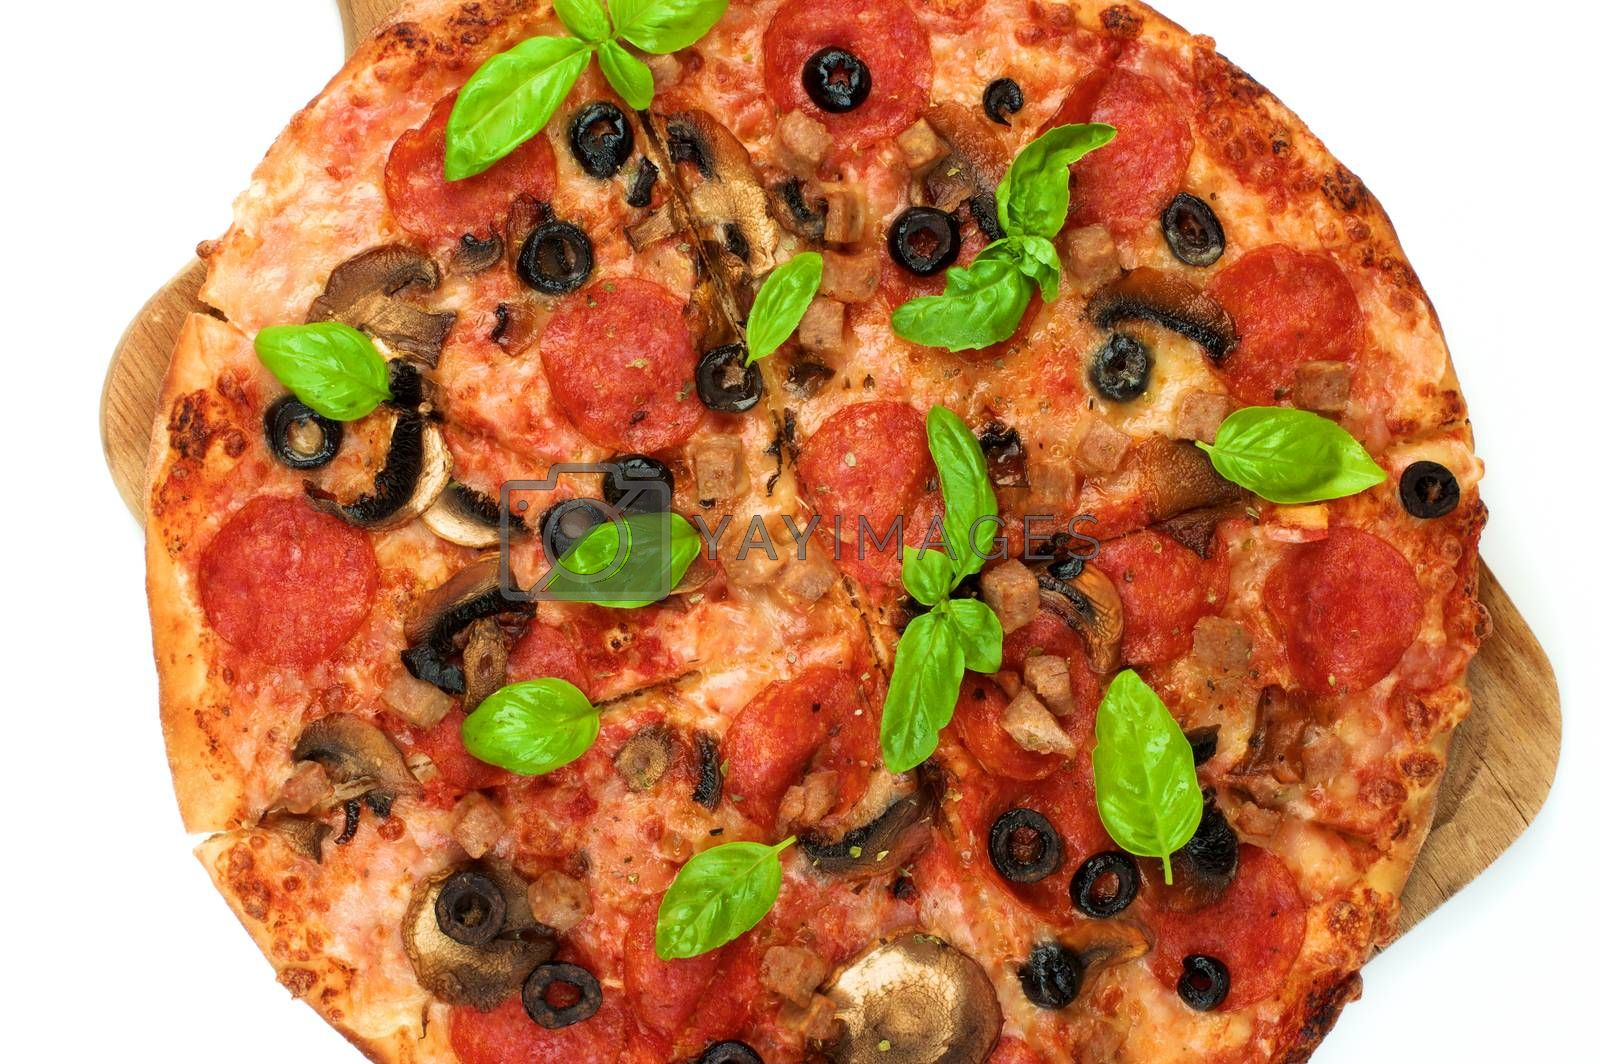 Pepperoni and Mushrooms Pizza by zhekos